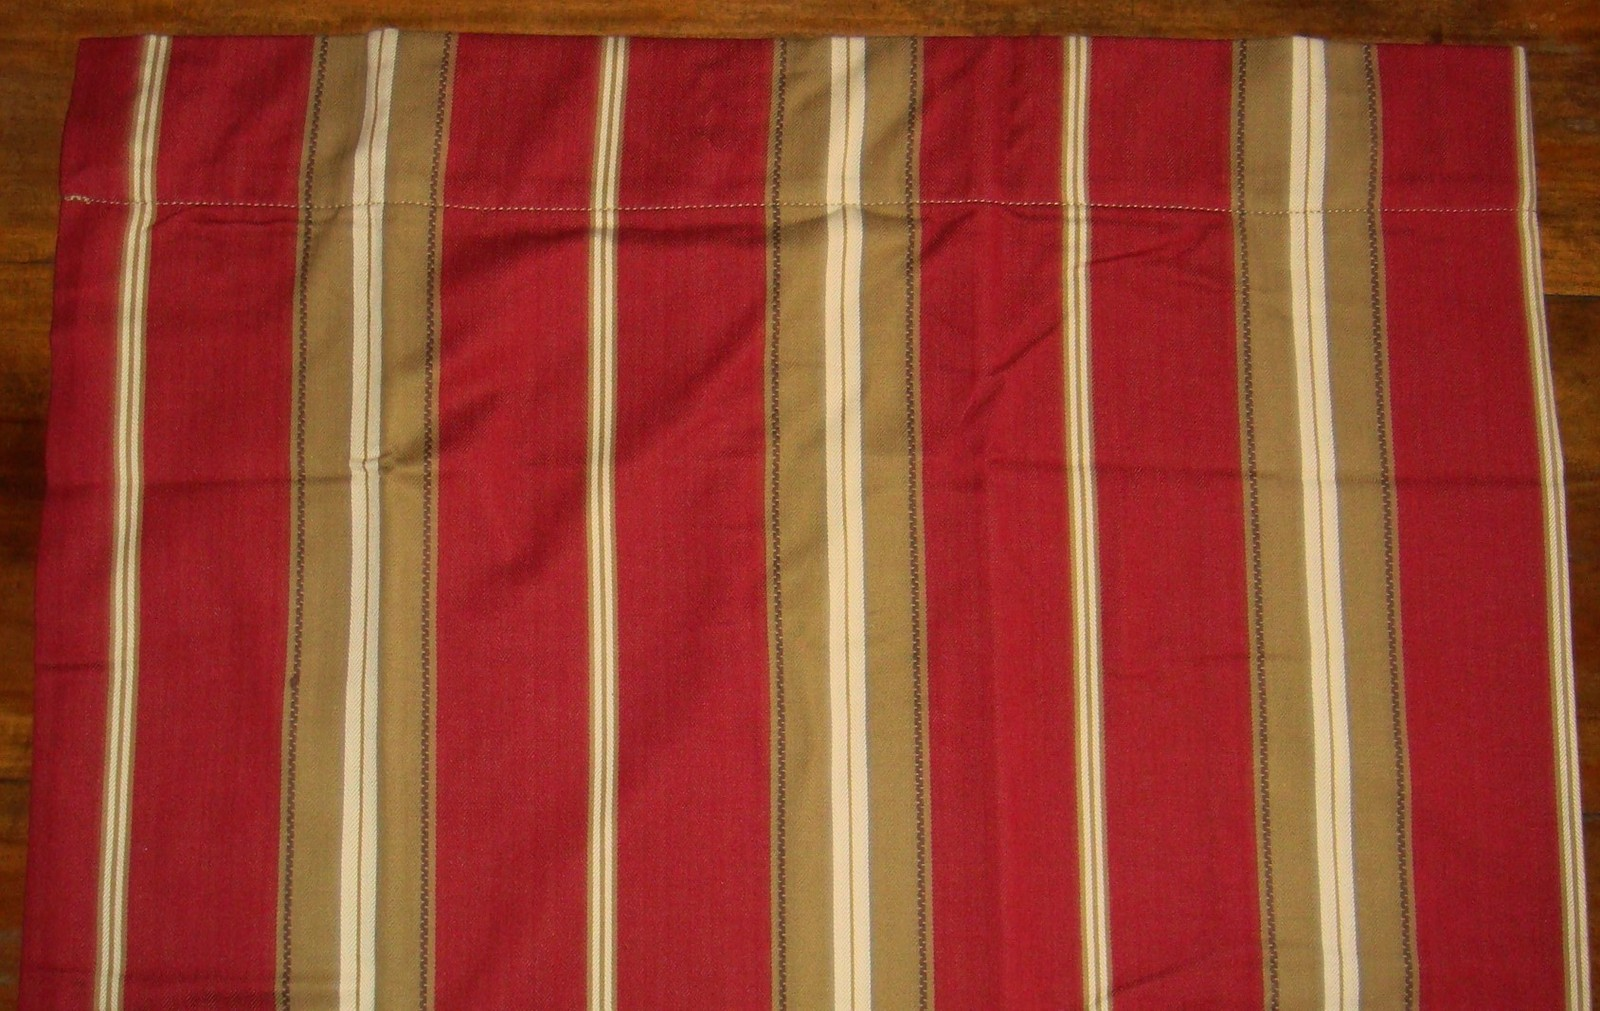 Pottery Barn 1 Red Stripe Lined Drapery Panel Curtain 50 X 84 Red Tan Cream Brow Curtains